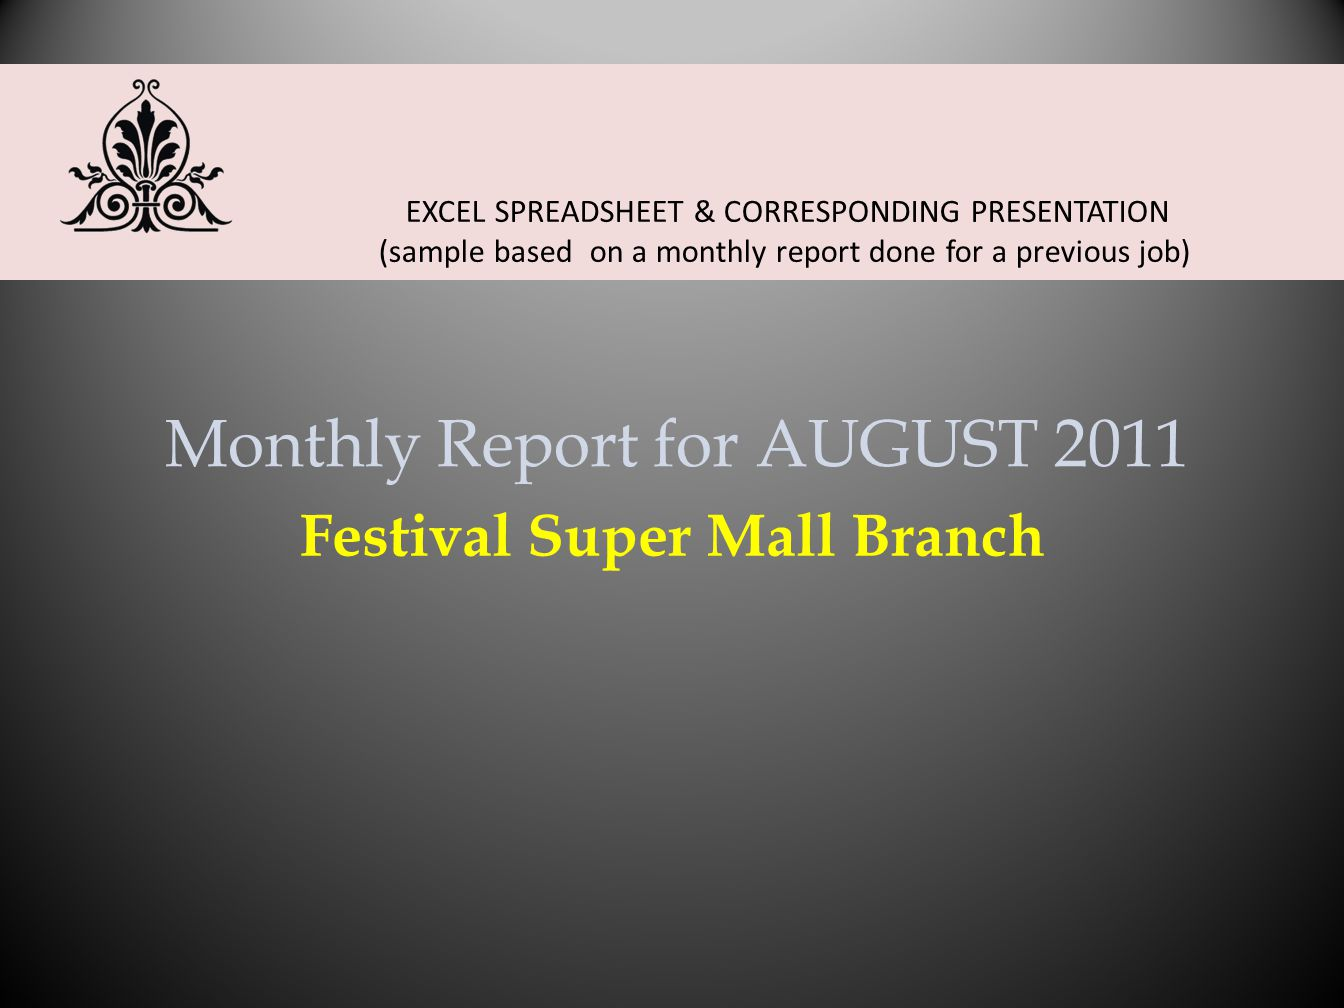 Monthly Report for AUGUST 2011 Festival Super Mall Branch EXCEL SPREADSHEET & CORRESPONDING PRESENTATION (sample based on a monthly report done for a